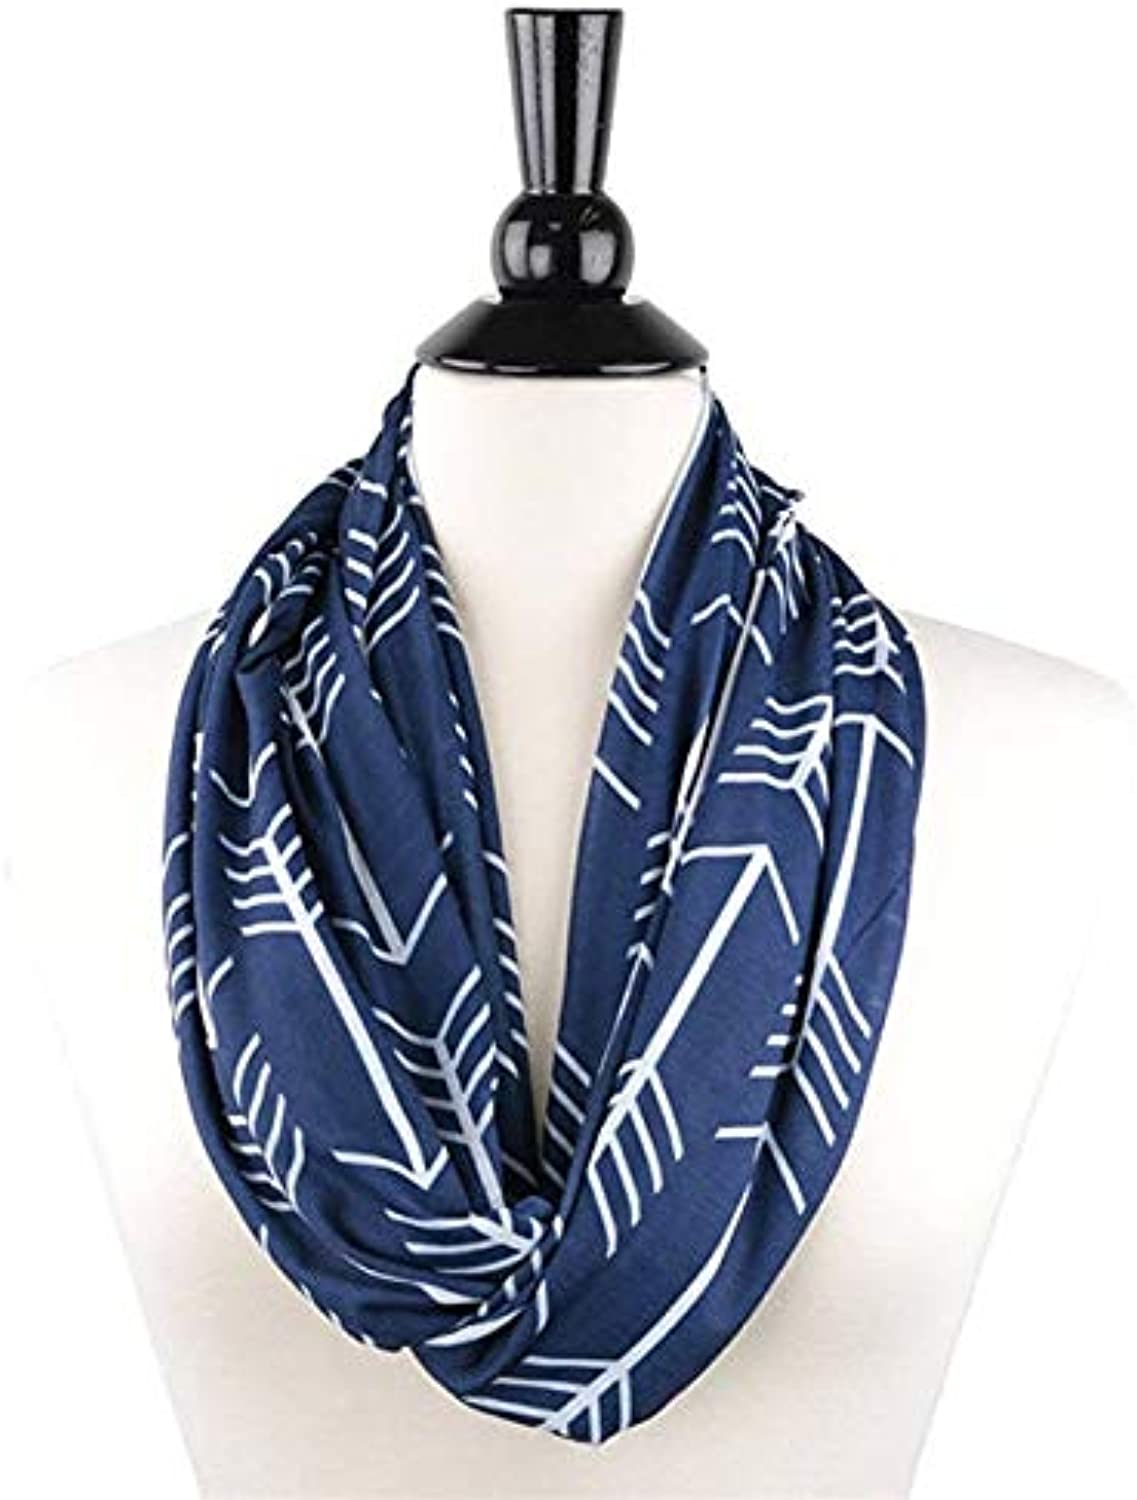 Party DIY Decorations  Newly Women Winter Arrowhead Pattern Congreenible Infinity Scarf with Pocket Loop Zipper Pocket Scarves Party DIY Decoration  (color  Dark bluee)